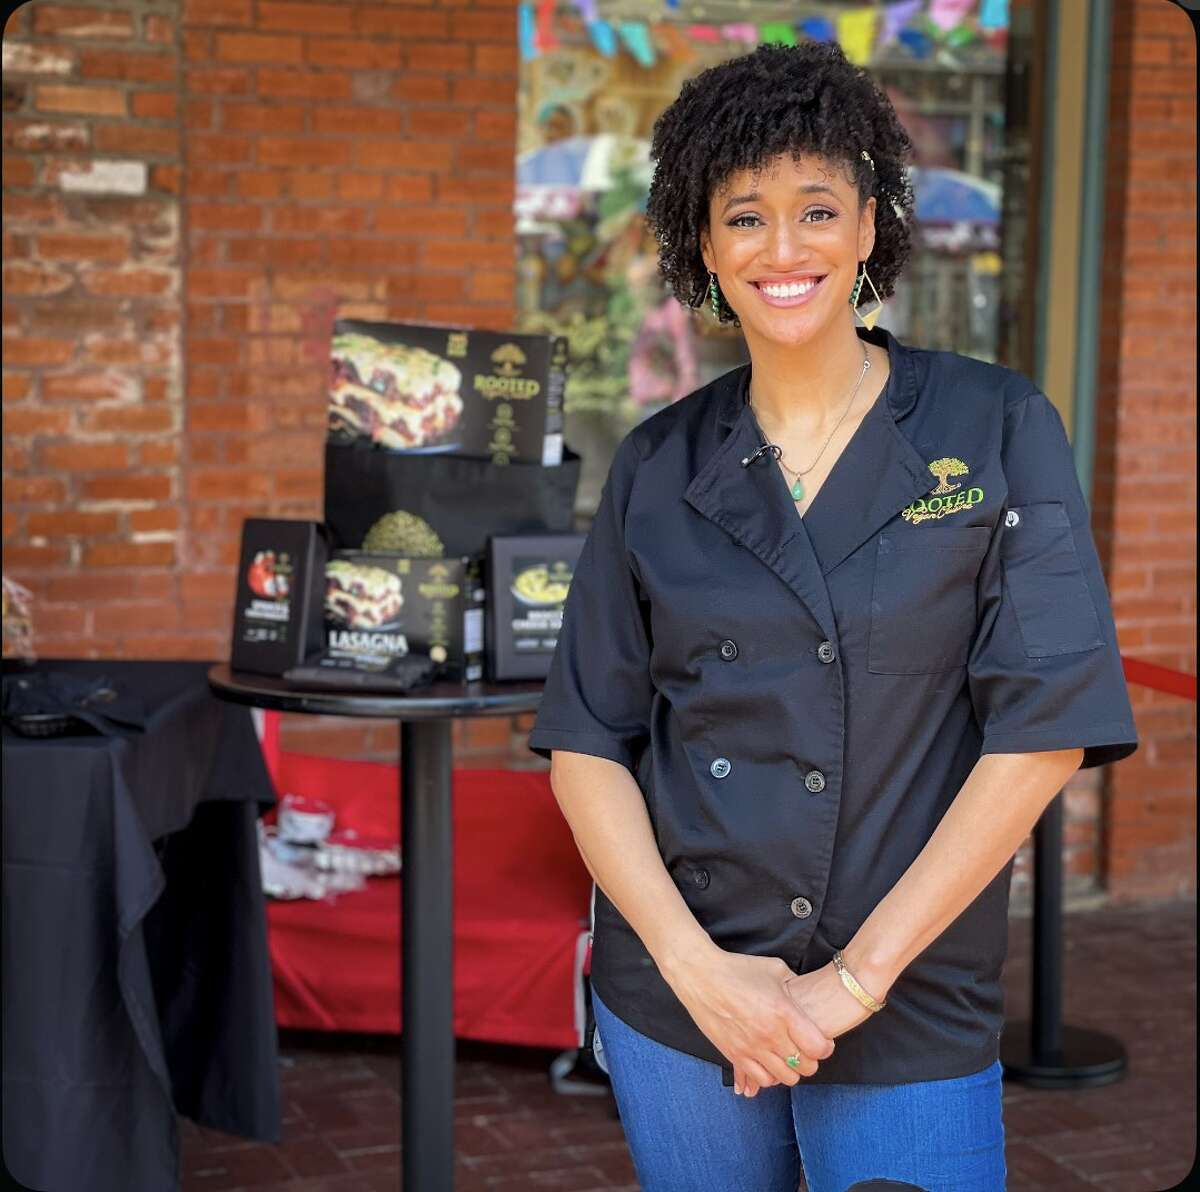 """Naomi Hendrix Oyegoke is launching Vegan Family Reunion, an inaugural event taking place March 21 at Cherrity Bar. Oyegoke is the owner and head chef of Rooted Vegan Cuisine. The market is aimed at highlighting local, Black-owned businesses while educating the community on alternatives to foodie favorites. Oyegoke said she wants to show San Antonio that healthy, plant-based food aren't """"intimidating or unsatisfying."""""""